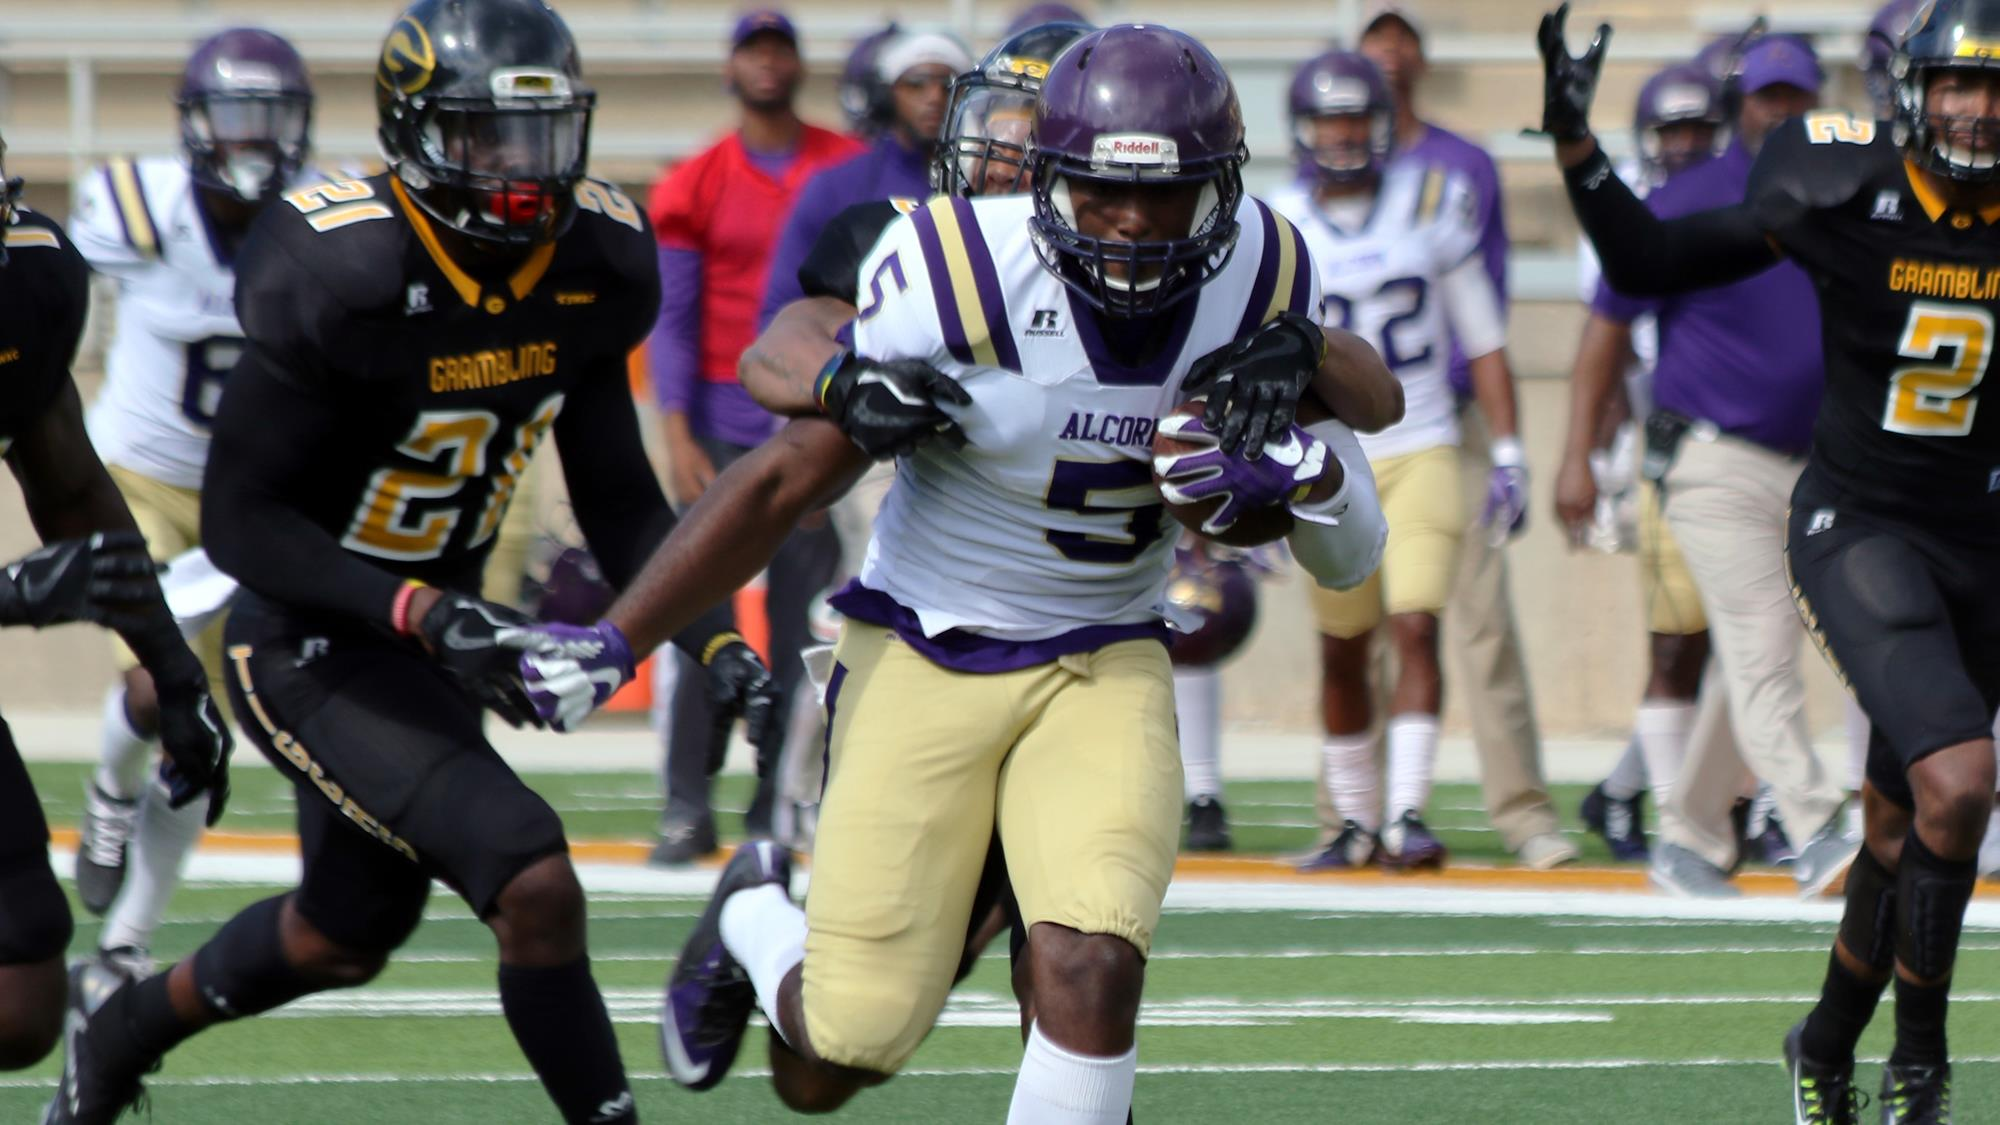 Braves Fall to Grambling on the Road